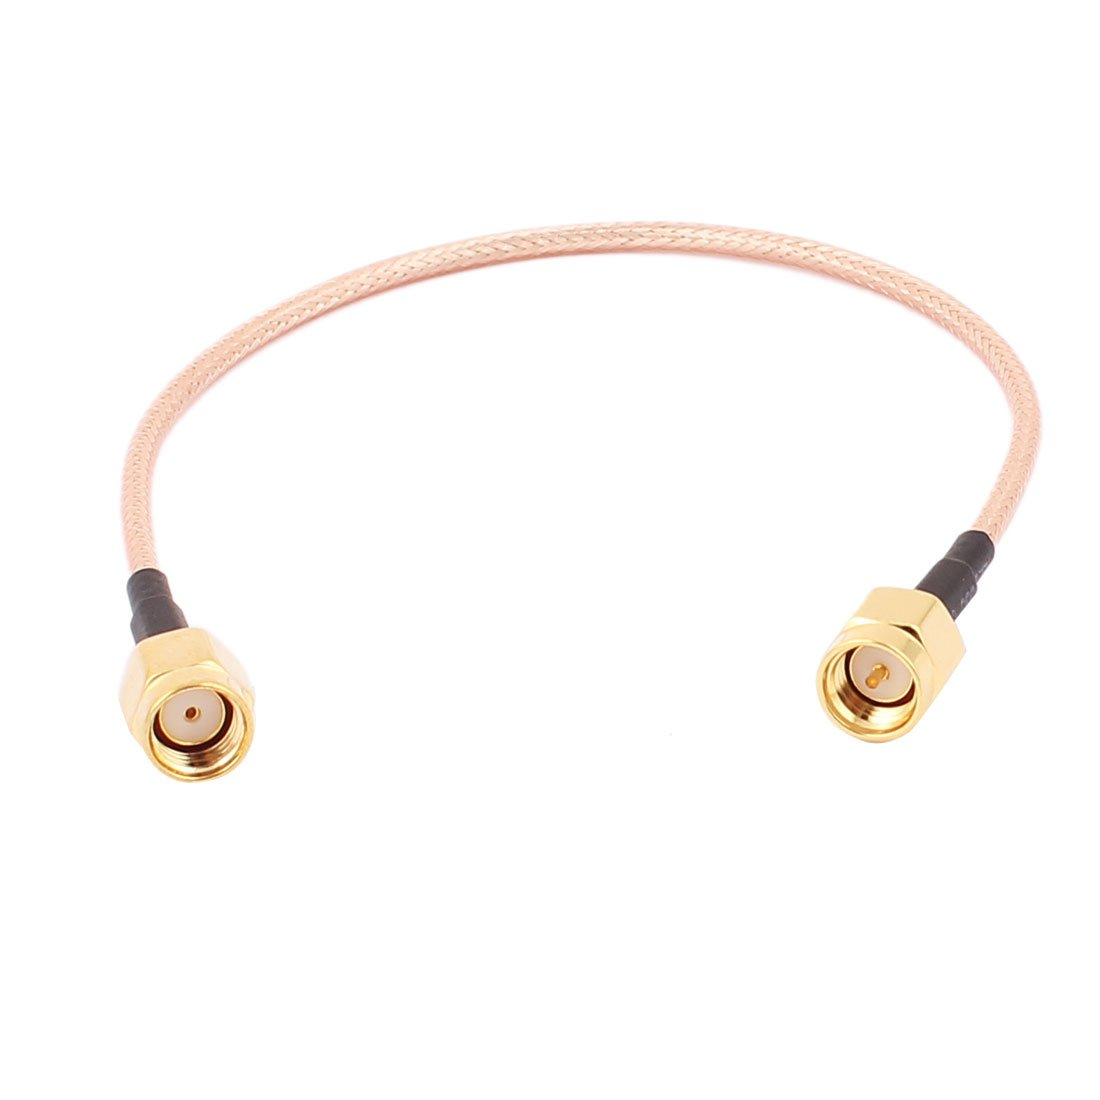 20 cm Uxcell RP-SMA-J Female to SMA-J Male RG316 Coaxial Cable Pigtail